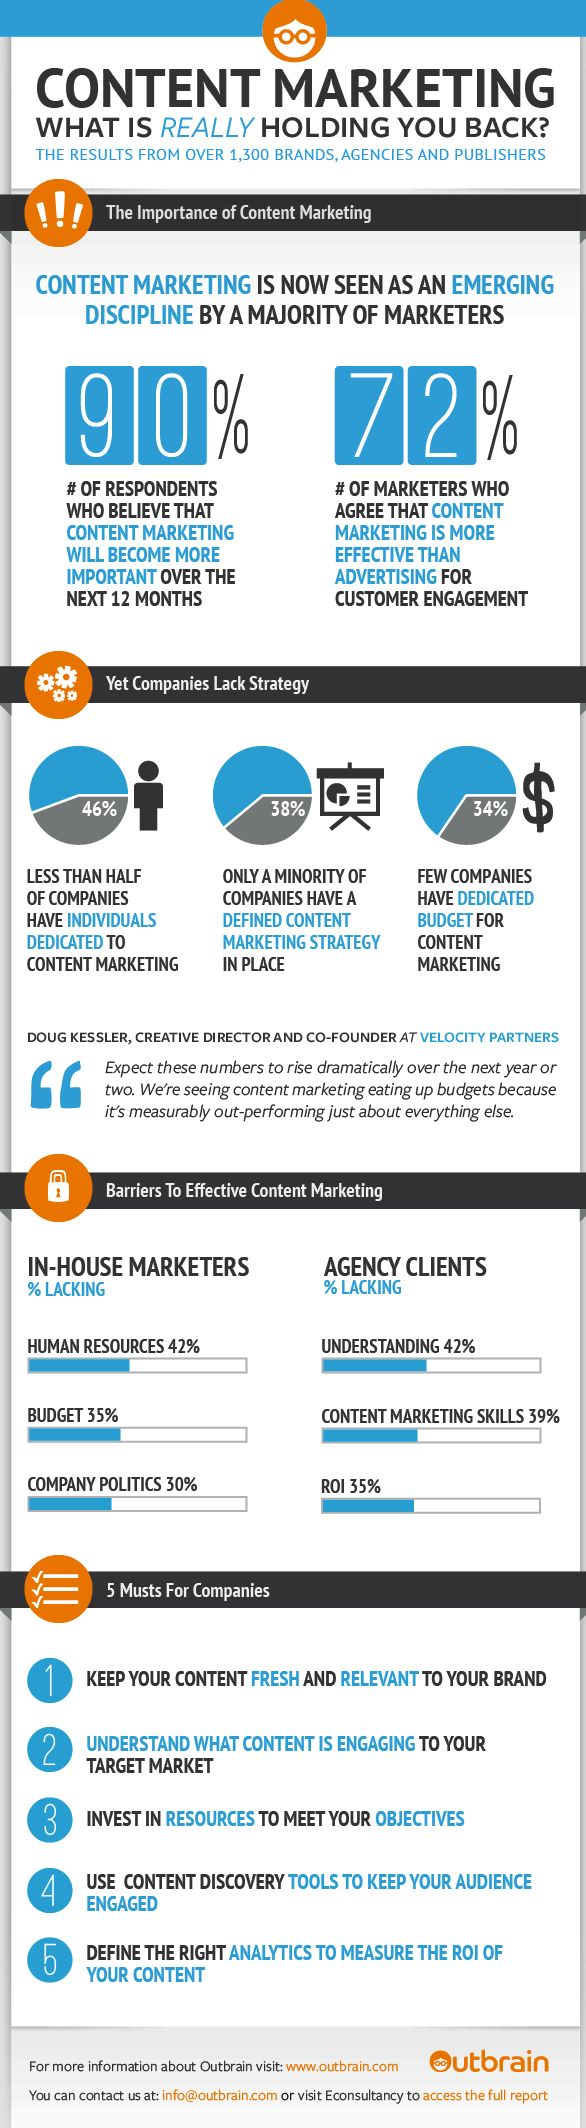 #ContentMarketing: What is Really Holding You Back?